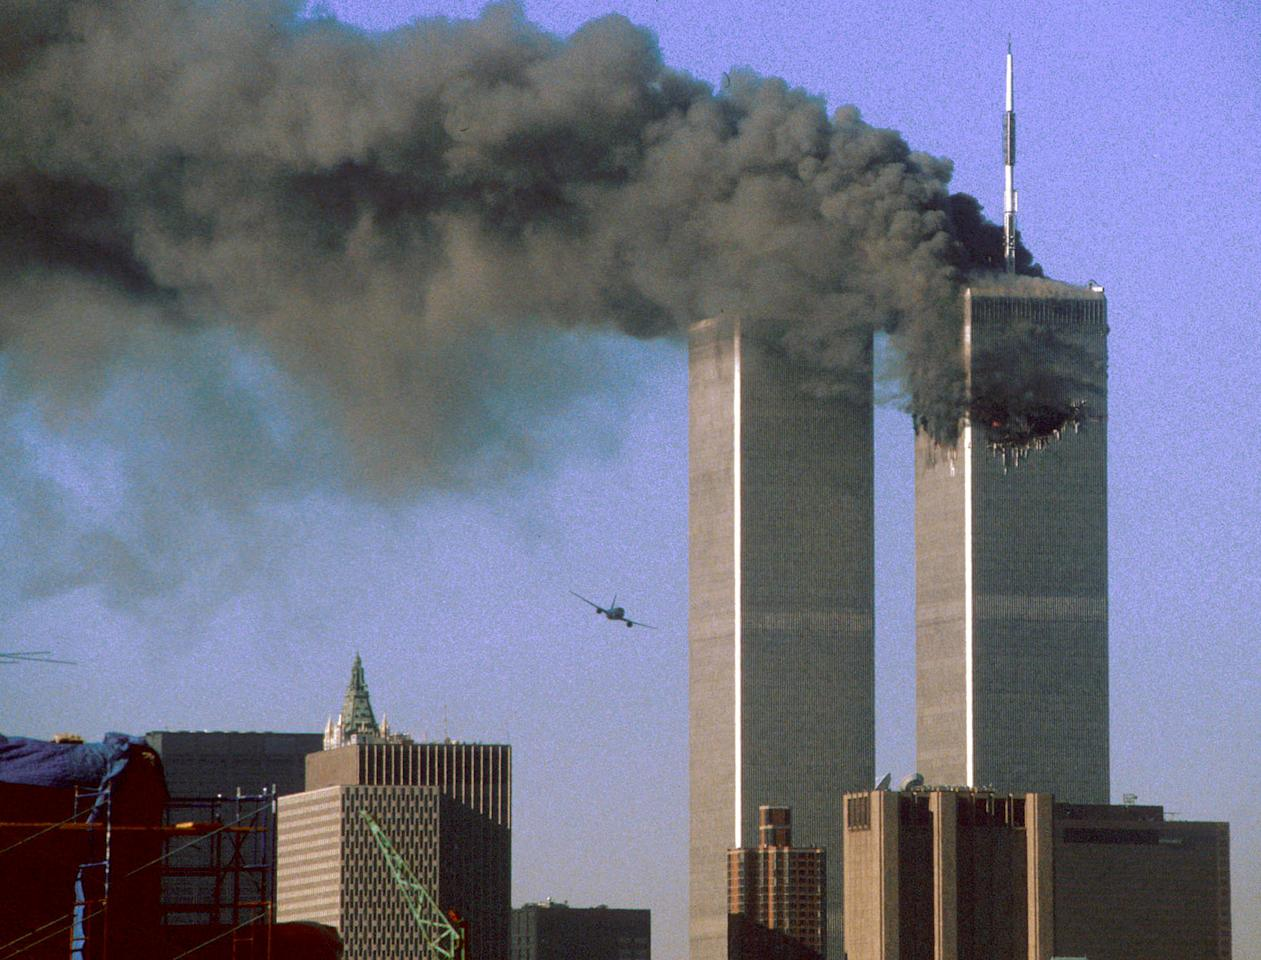 "Hijacked United Airlines Flight 175 (L) flies toward the World Trade Center twin towers shortly before slamming into the south tower (L) as the north tower burns following an earlier attack by a hijacked airliner in New York City September 11, 2001. The stunning aerial assaults on the huge commercial complex where more than 40,000 people worked on an ordinary day were part of a coordinated attack aimed at the nation's financial heart. They destroyed one of America's most dramatic symbols of power and financial strength and left New York reeling. <br><br>(REUTERS/STR New)<a target=""_blank"" href=""http://www.life.com/gallery/59971/911-the-25-most-powerful-photos#index/0""><br></a>"